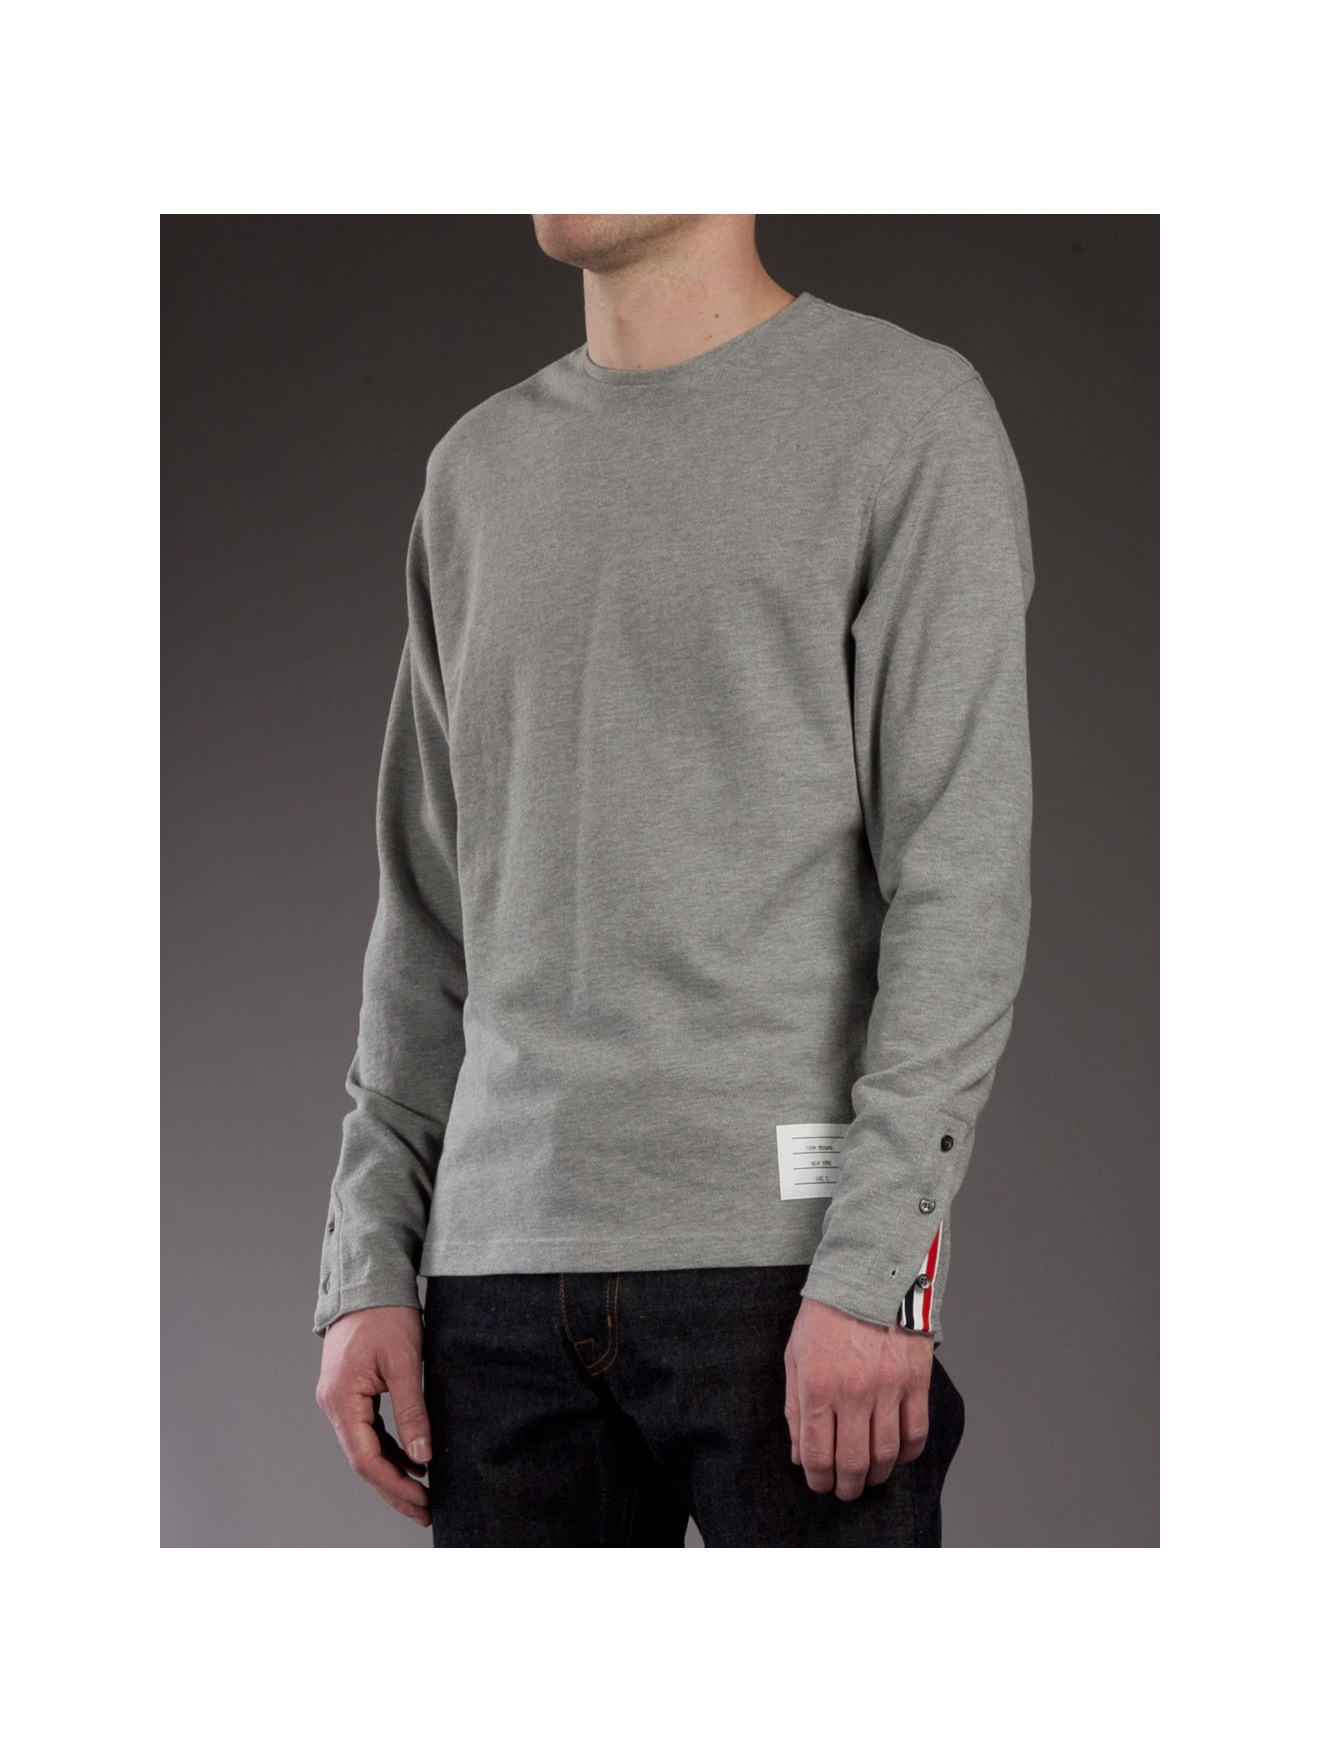 Thom browne long sleeved t shirt in gray for men lyst for Thom browne t shirt